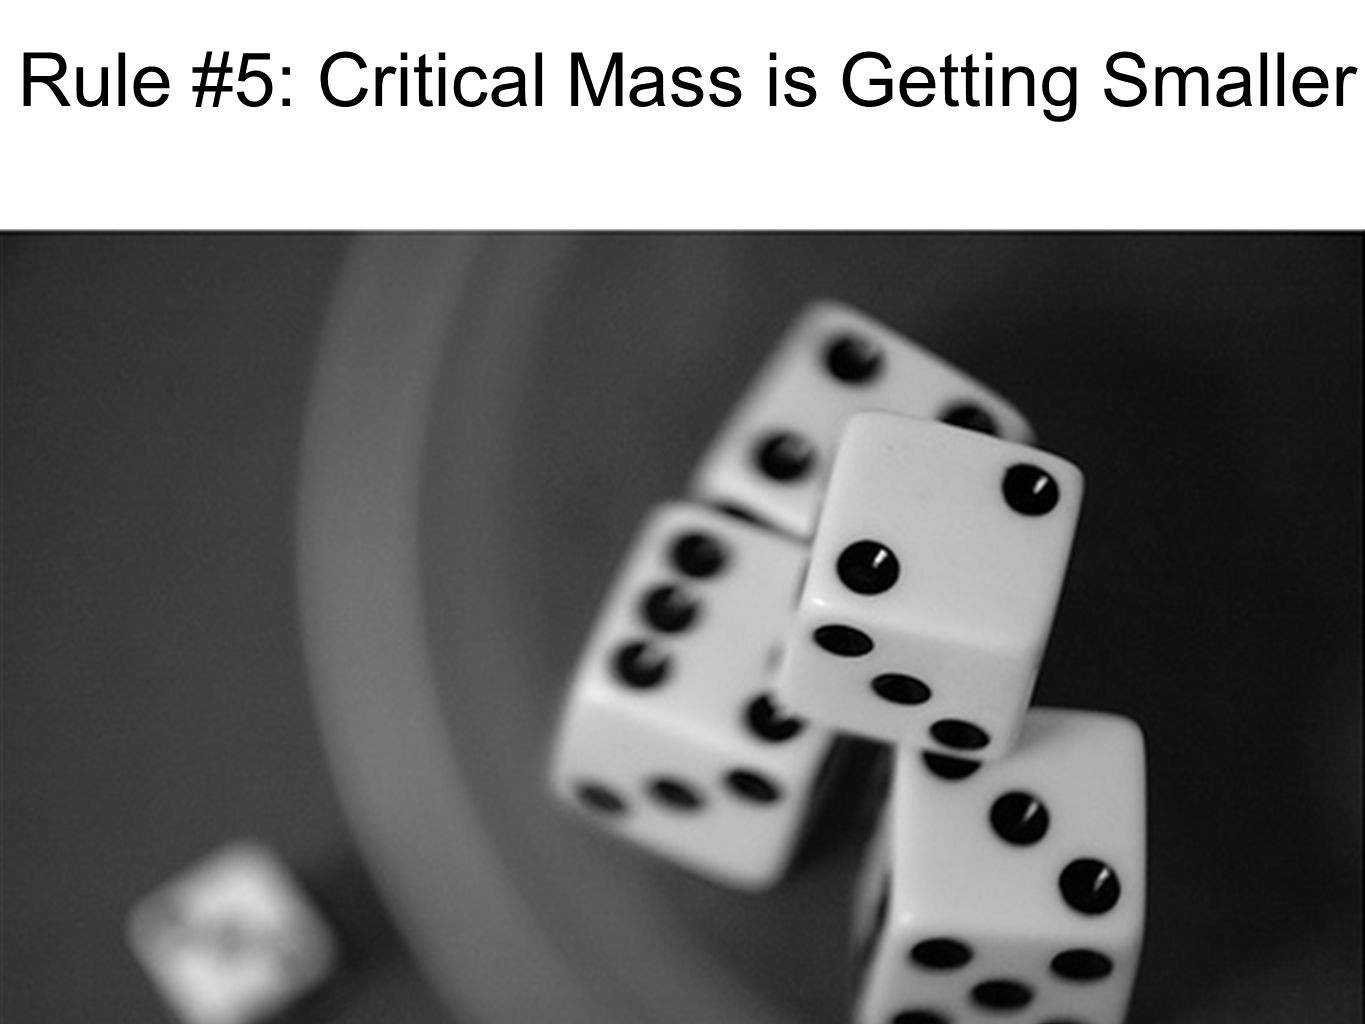 Rule #5: Critical Mass is Getting Smaller